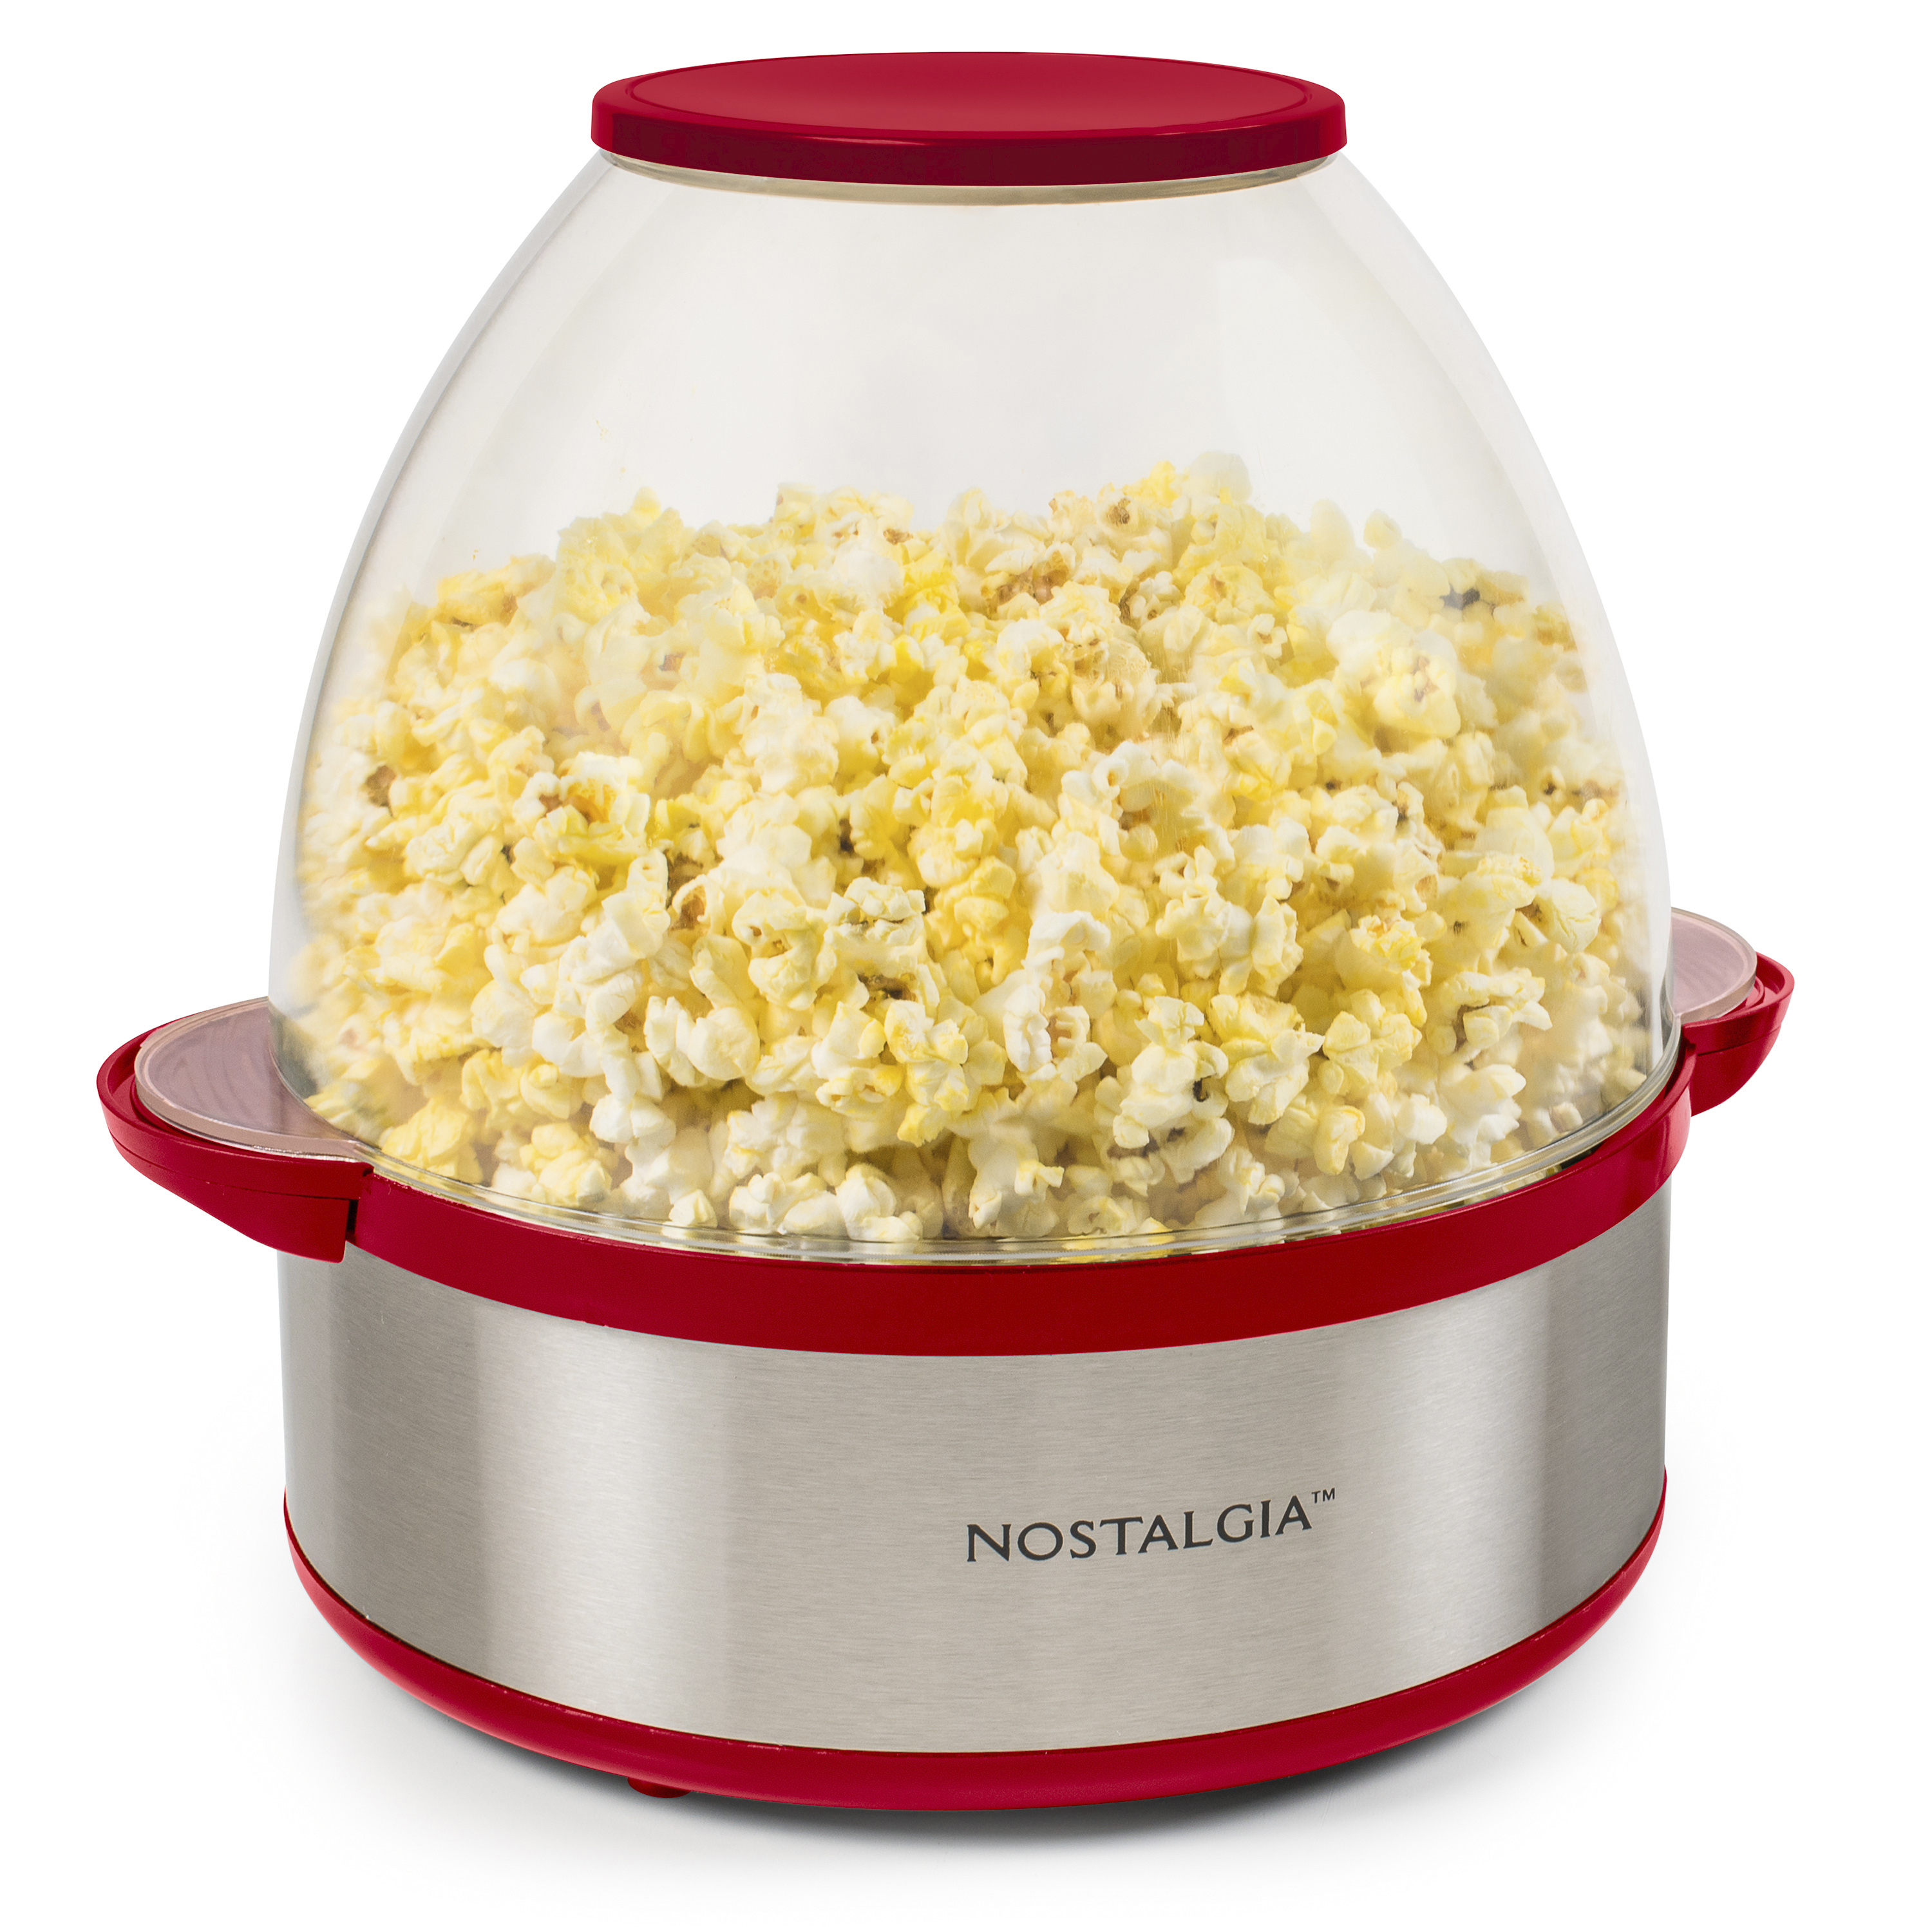 nostalgia 6 quart stirring popcorn popper makes 24 cups red and stainless